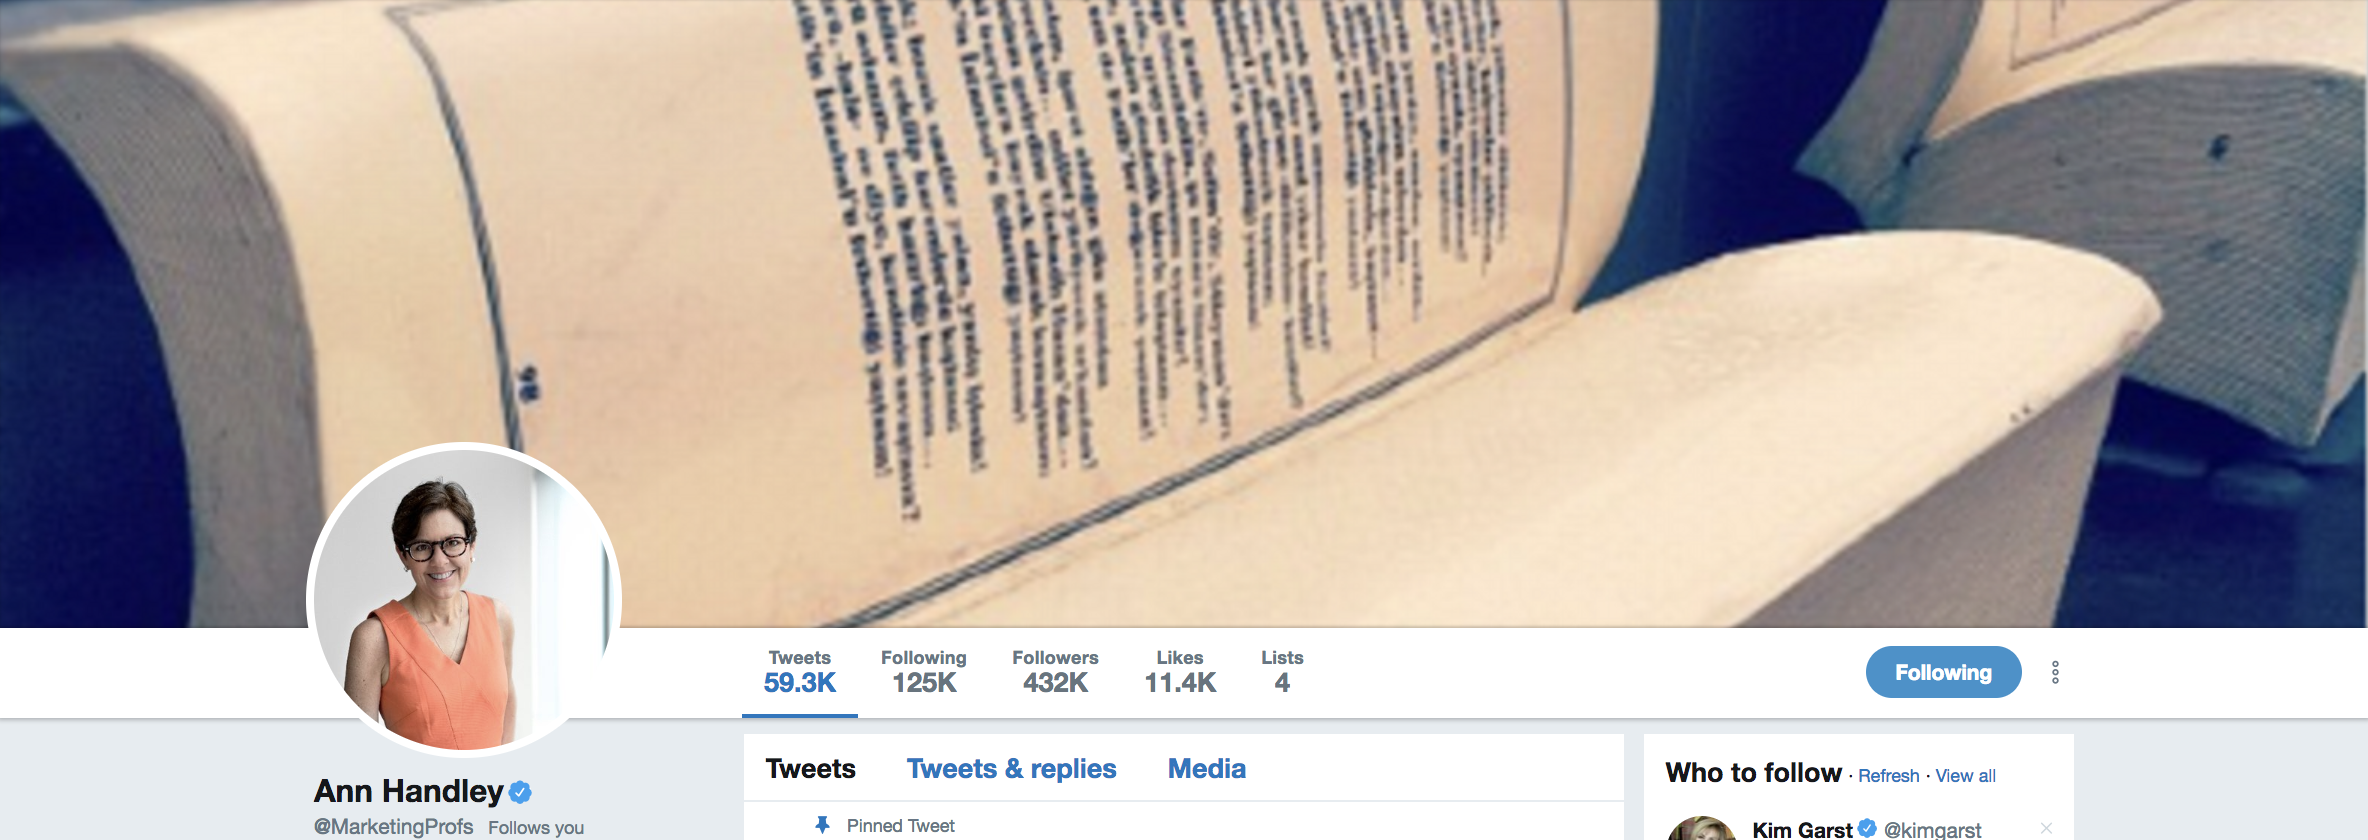 personal-twitter-cover-photo